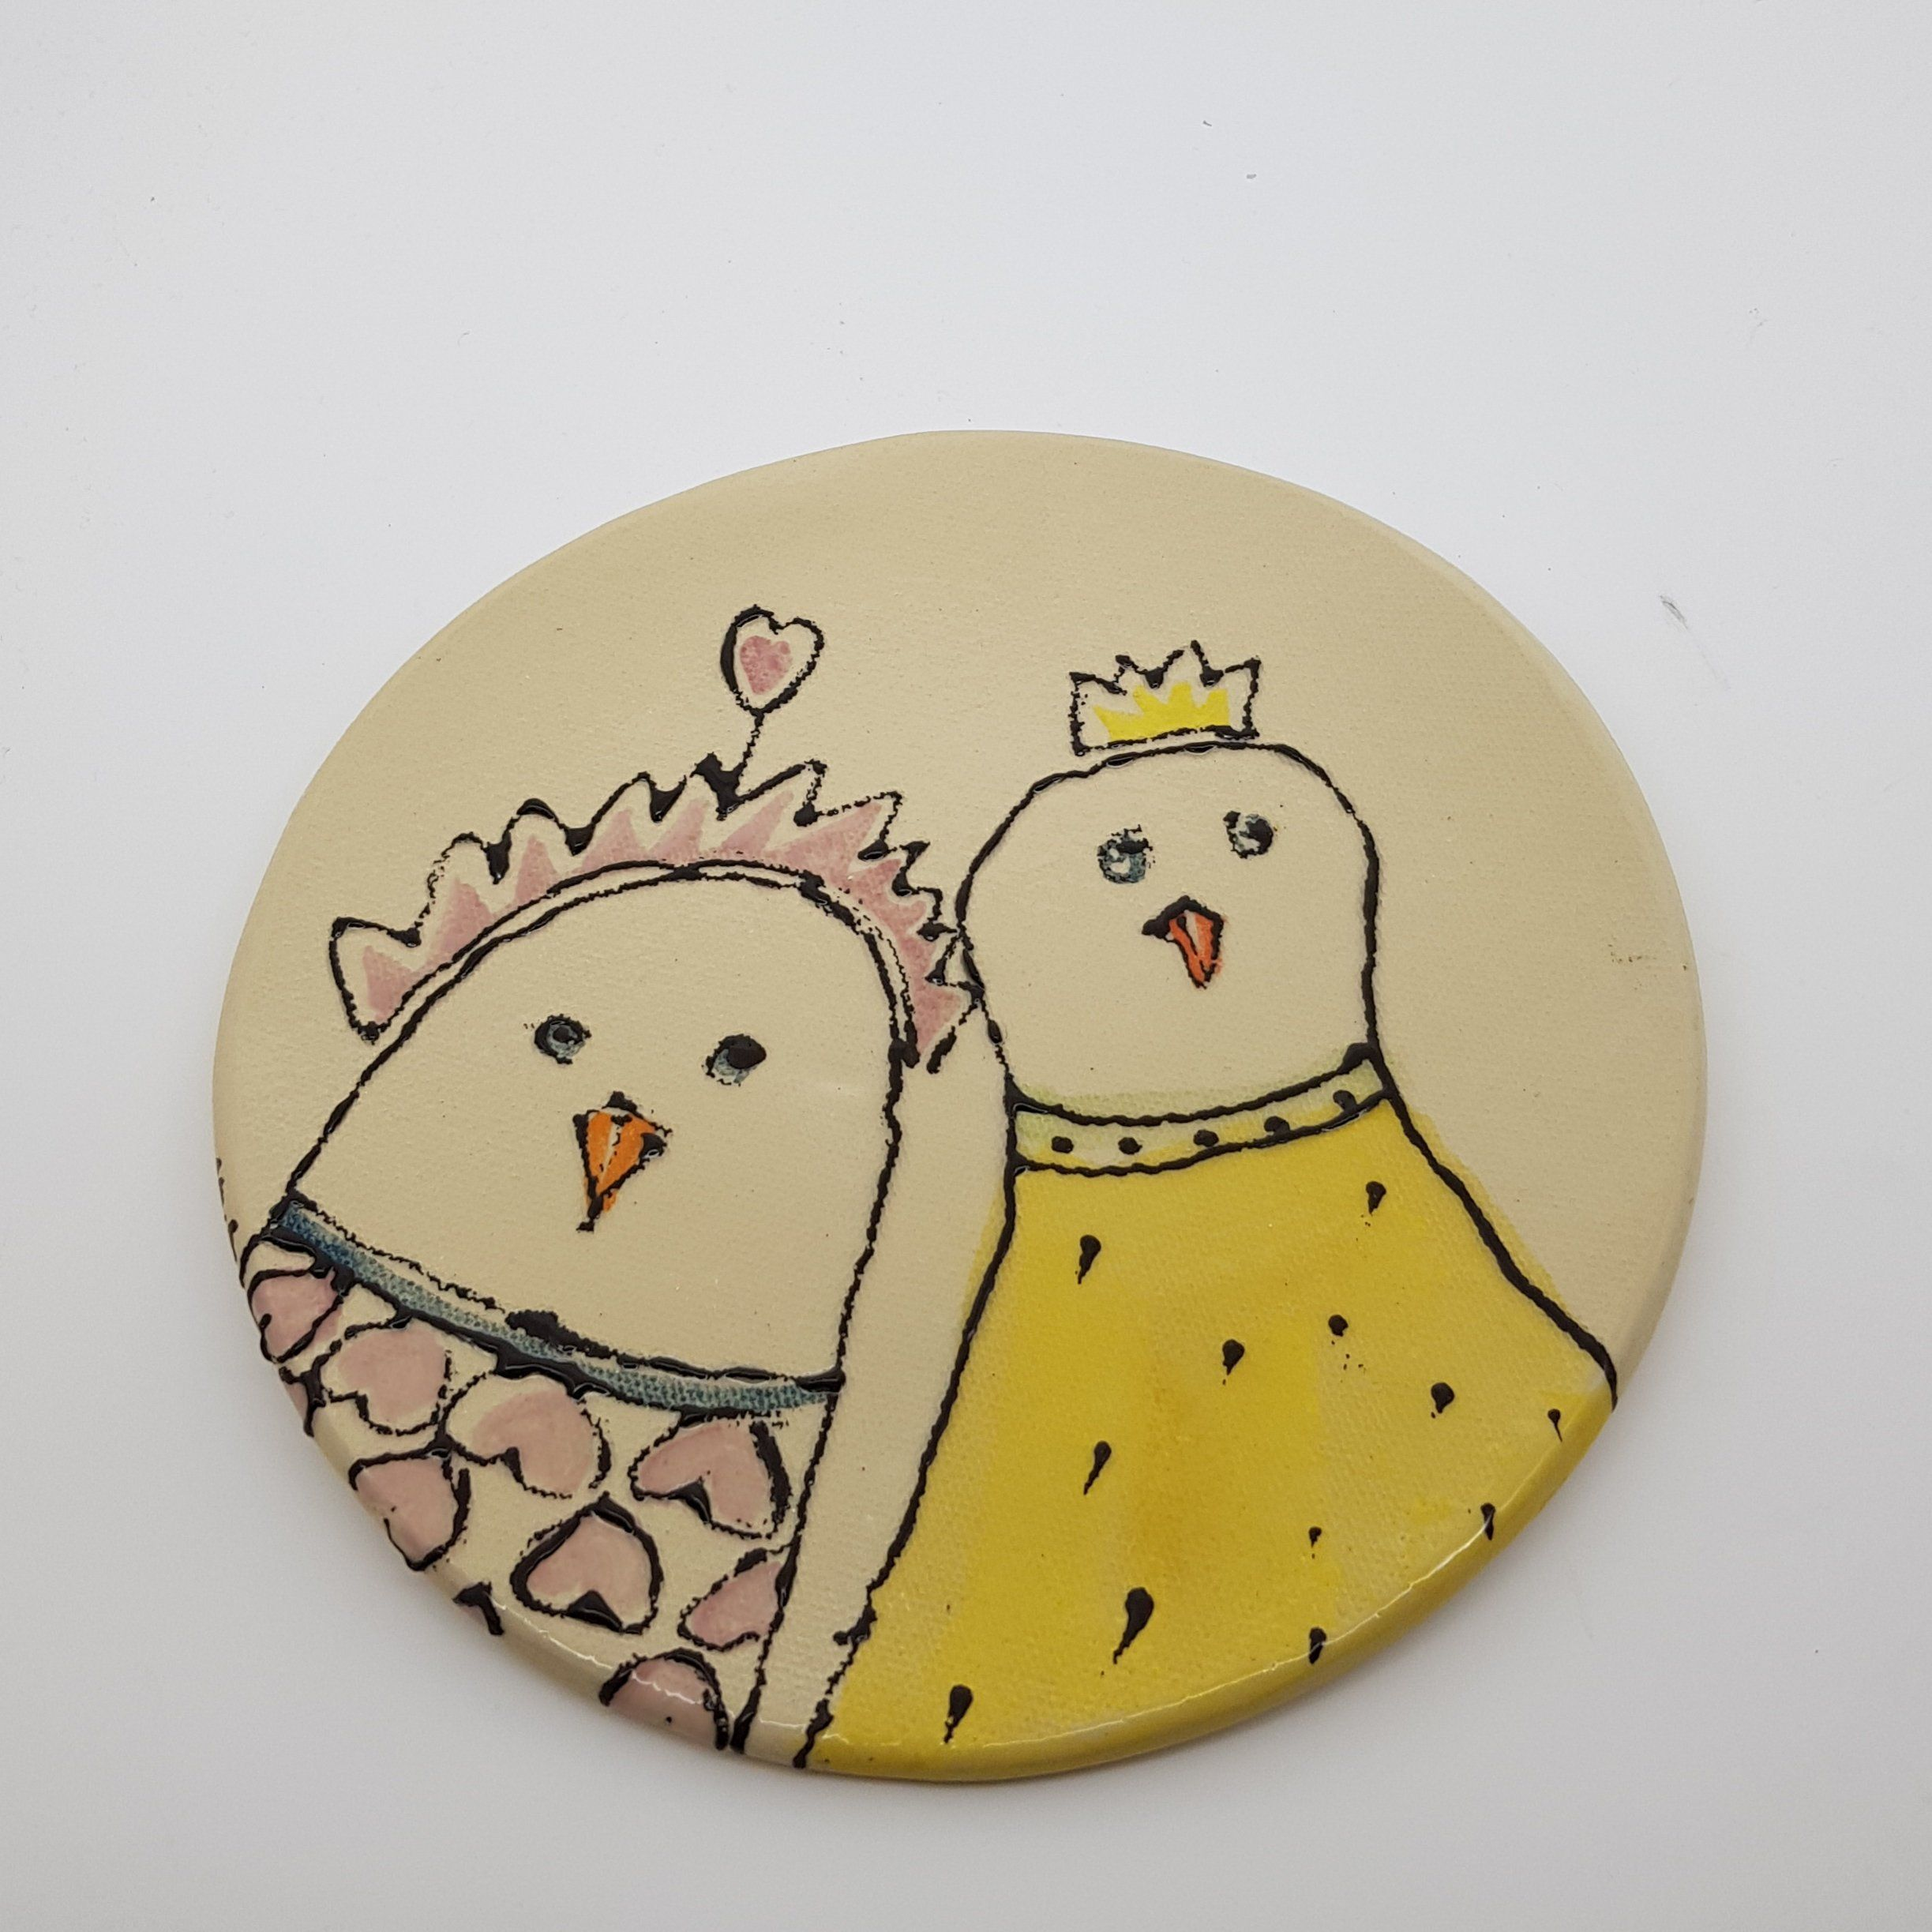 Ceramic Plate With Magical Hen, Wall Plate, Plates Design   Plate ...